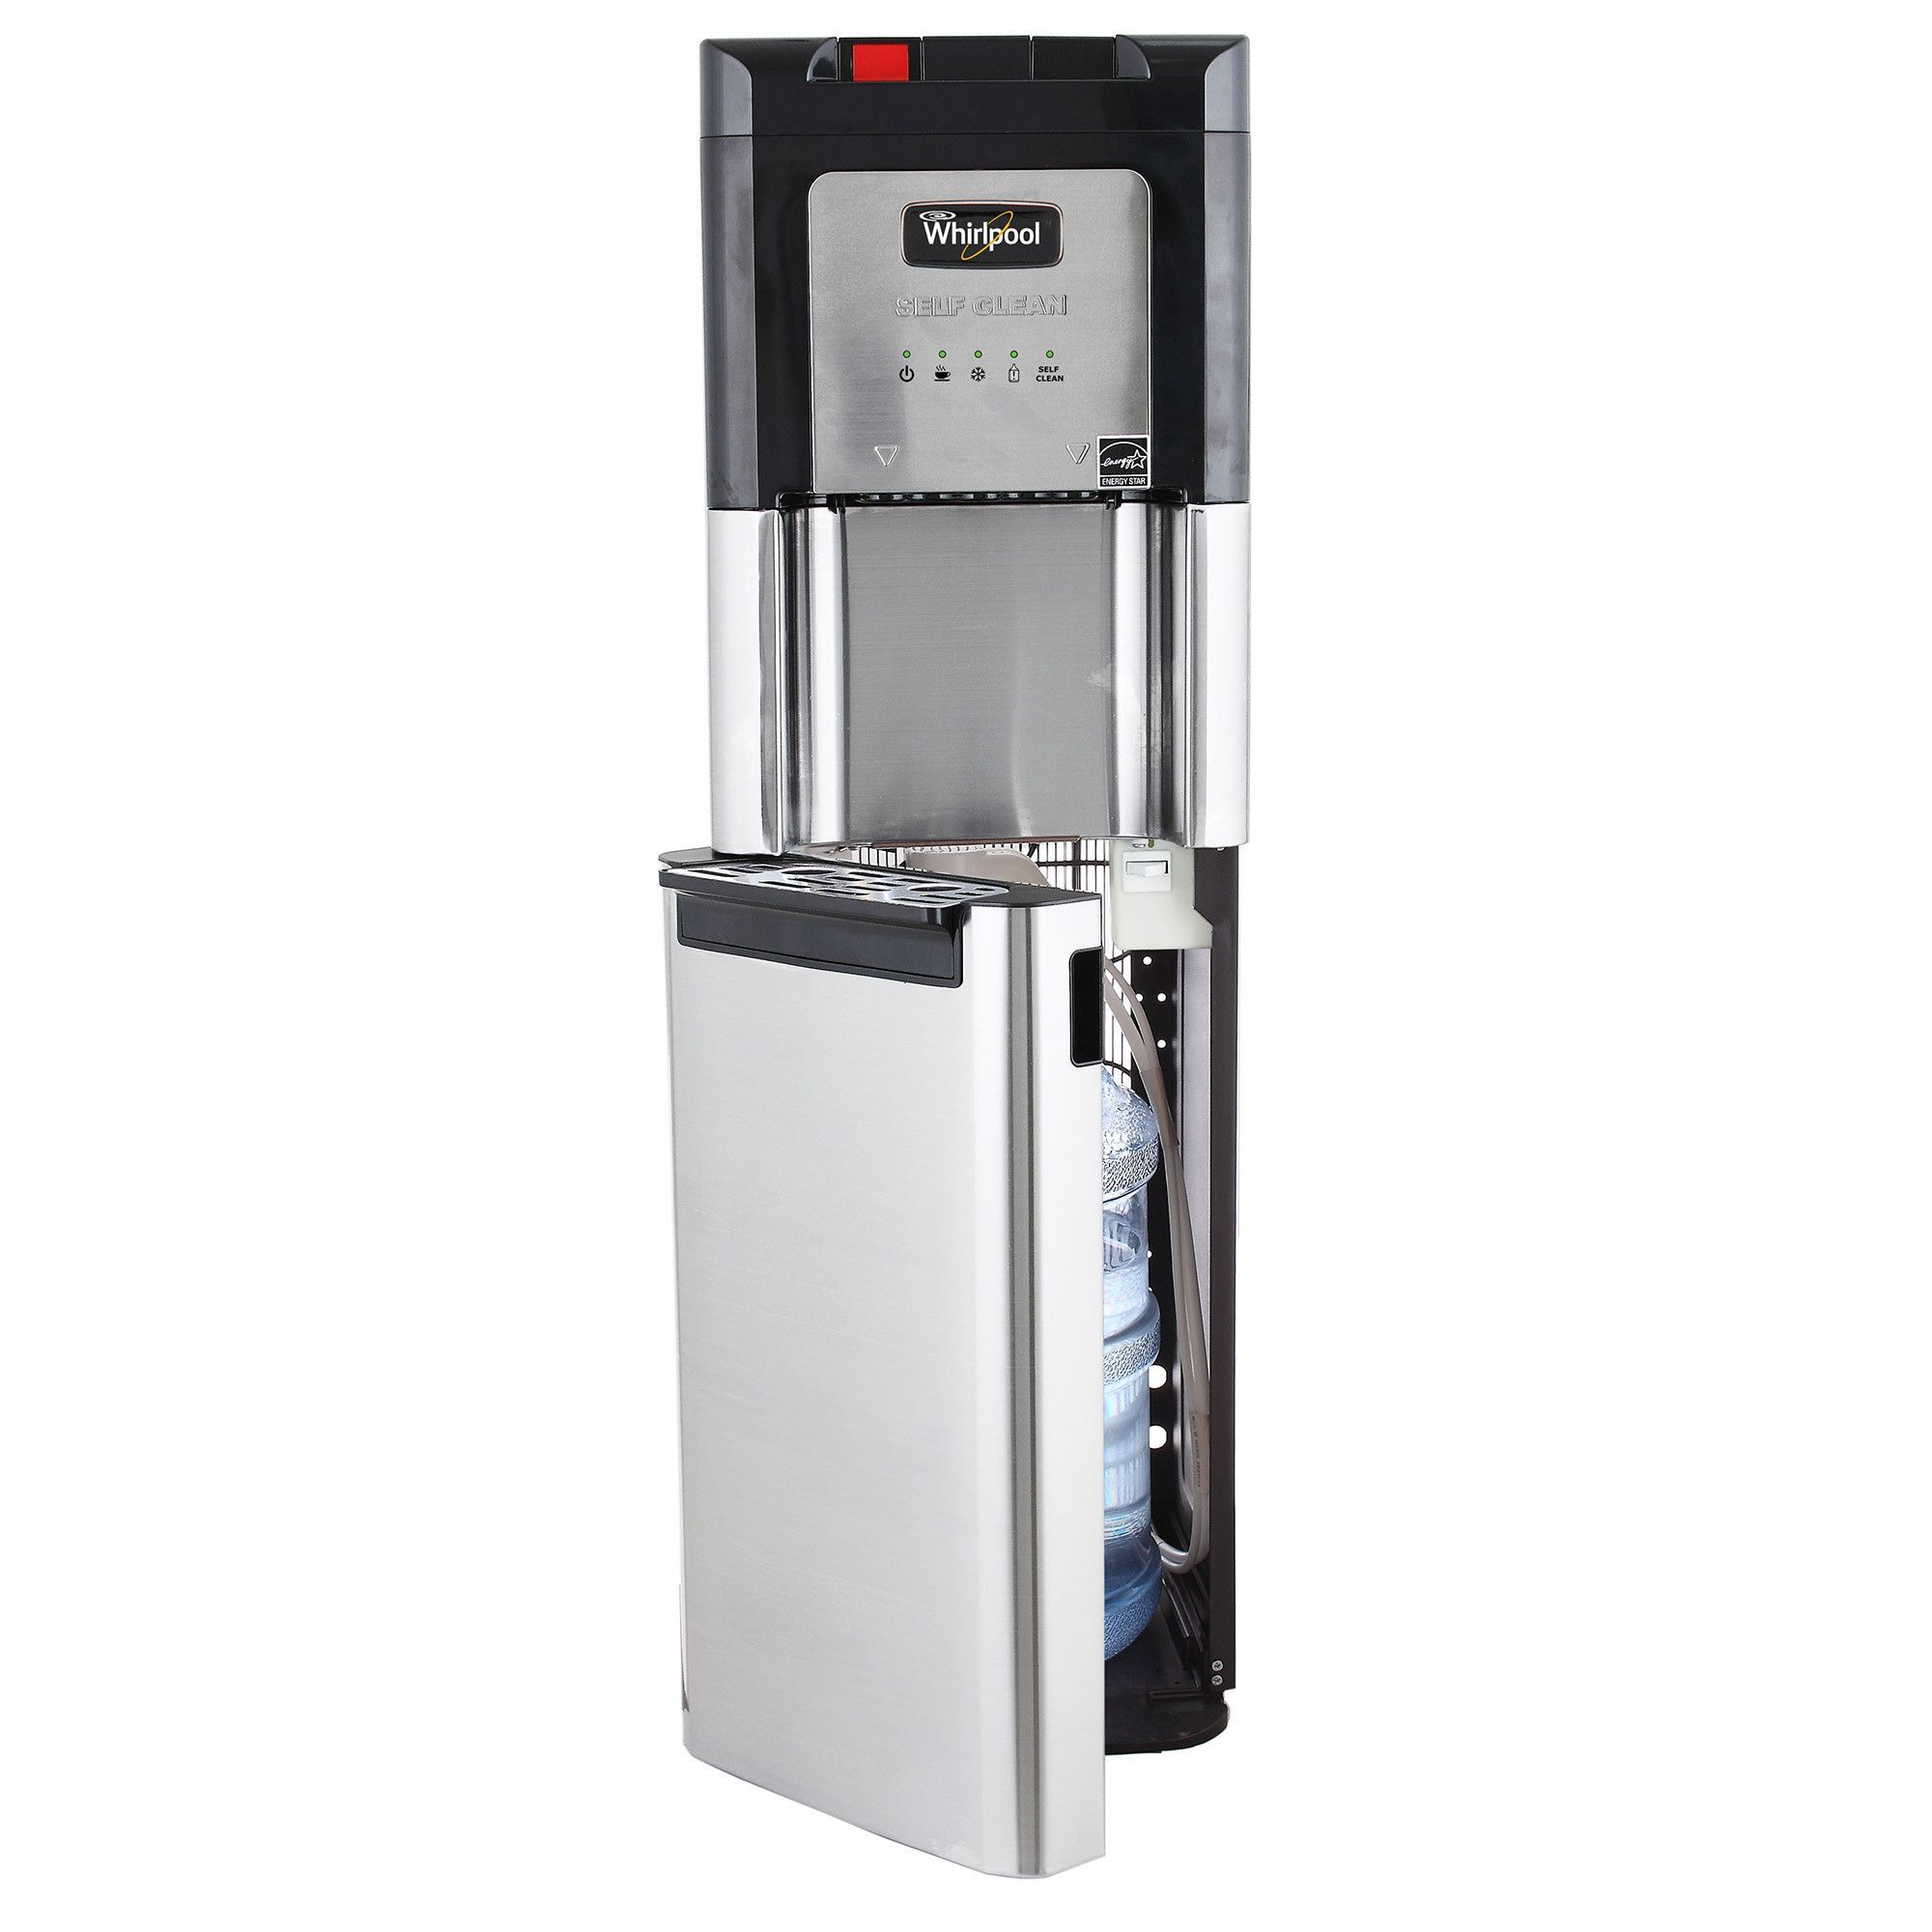 Whirlpool Self Cleaning Stainless Steel Bottom Load Water Cooler ...